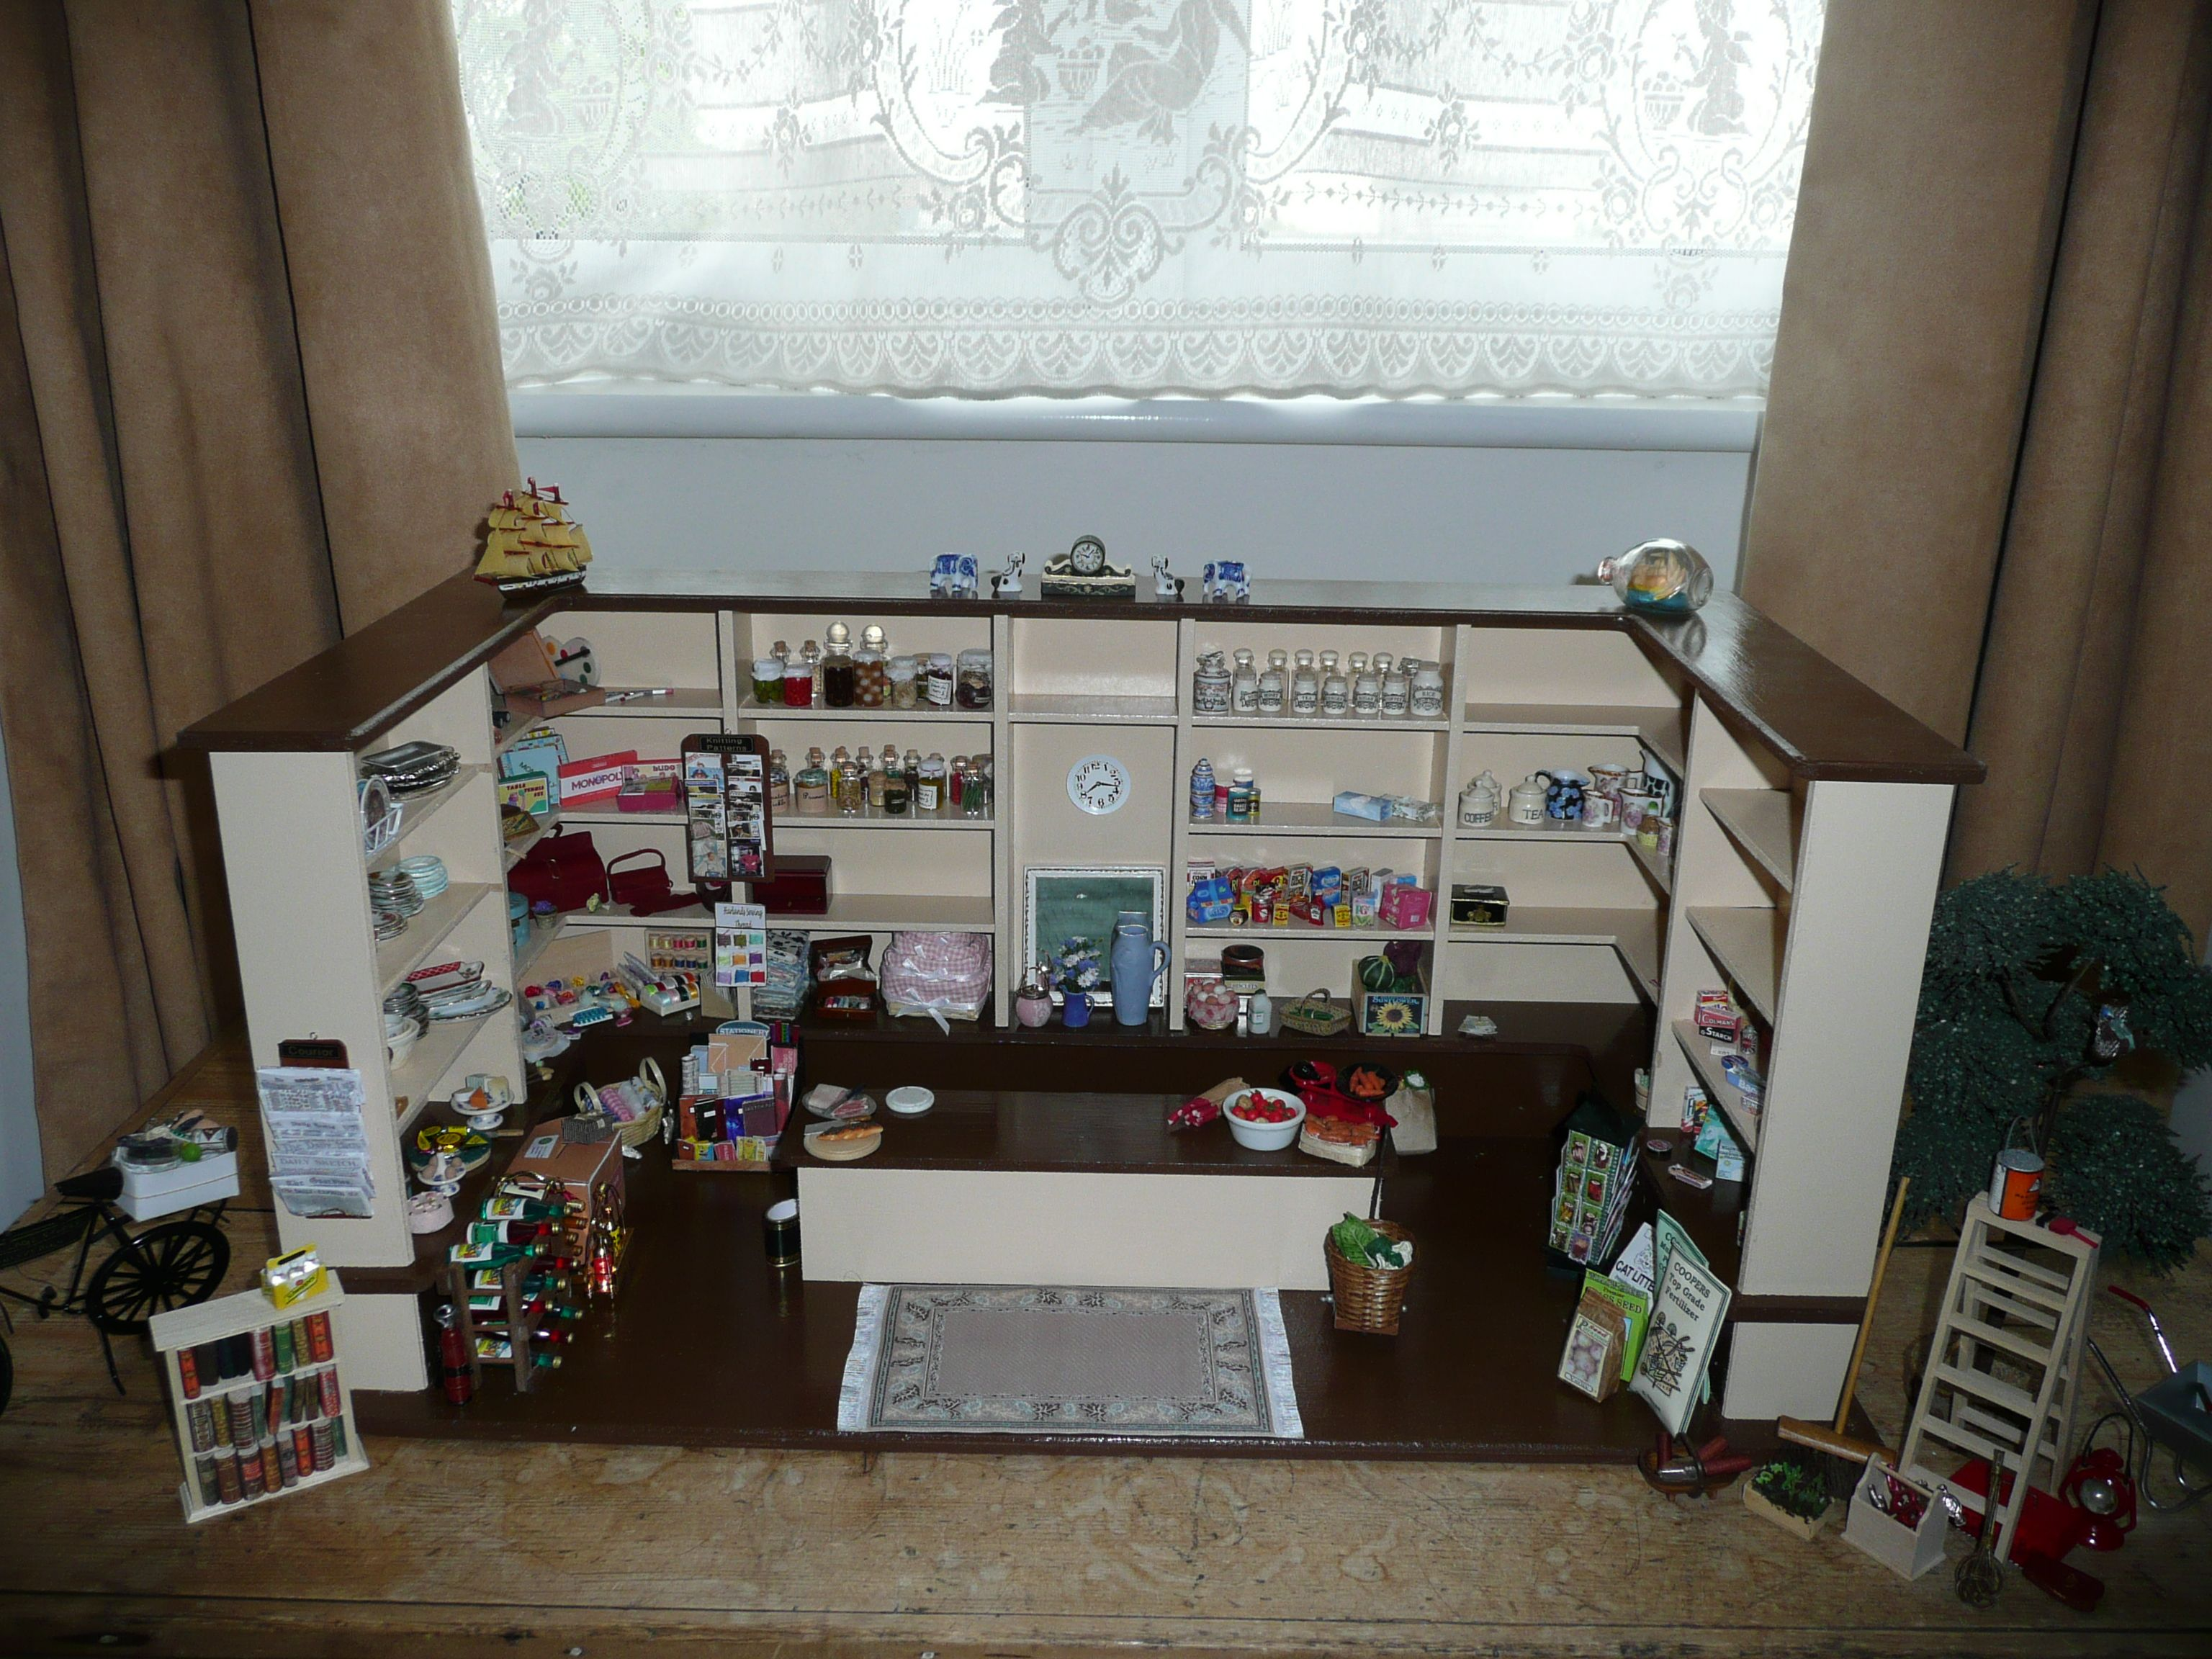 What a brilliant idea to store those extras! This way you can go shopping for essentials in your own miniature shop. I love it!